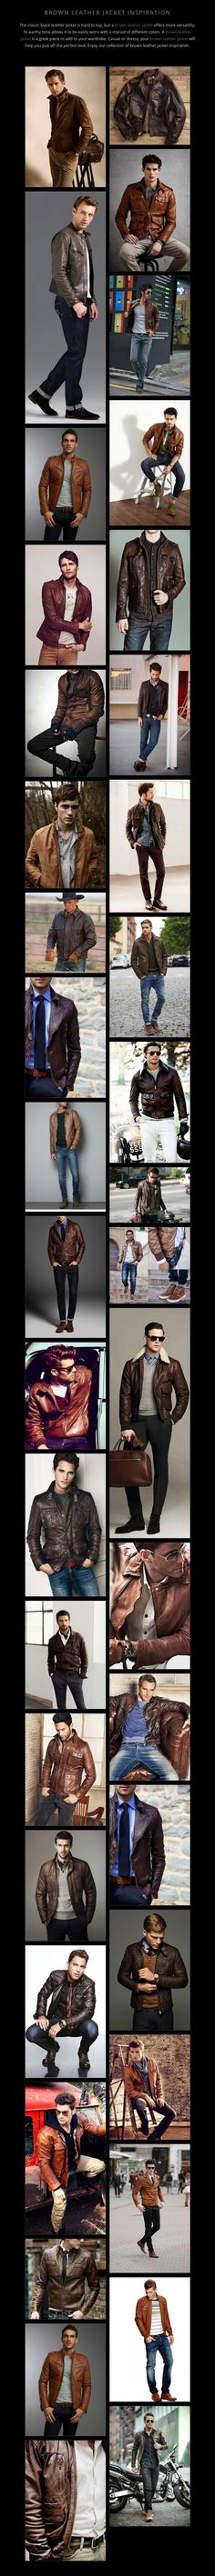 BROWN LEATHER JACKET INSPIRATION